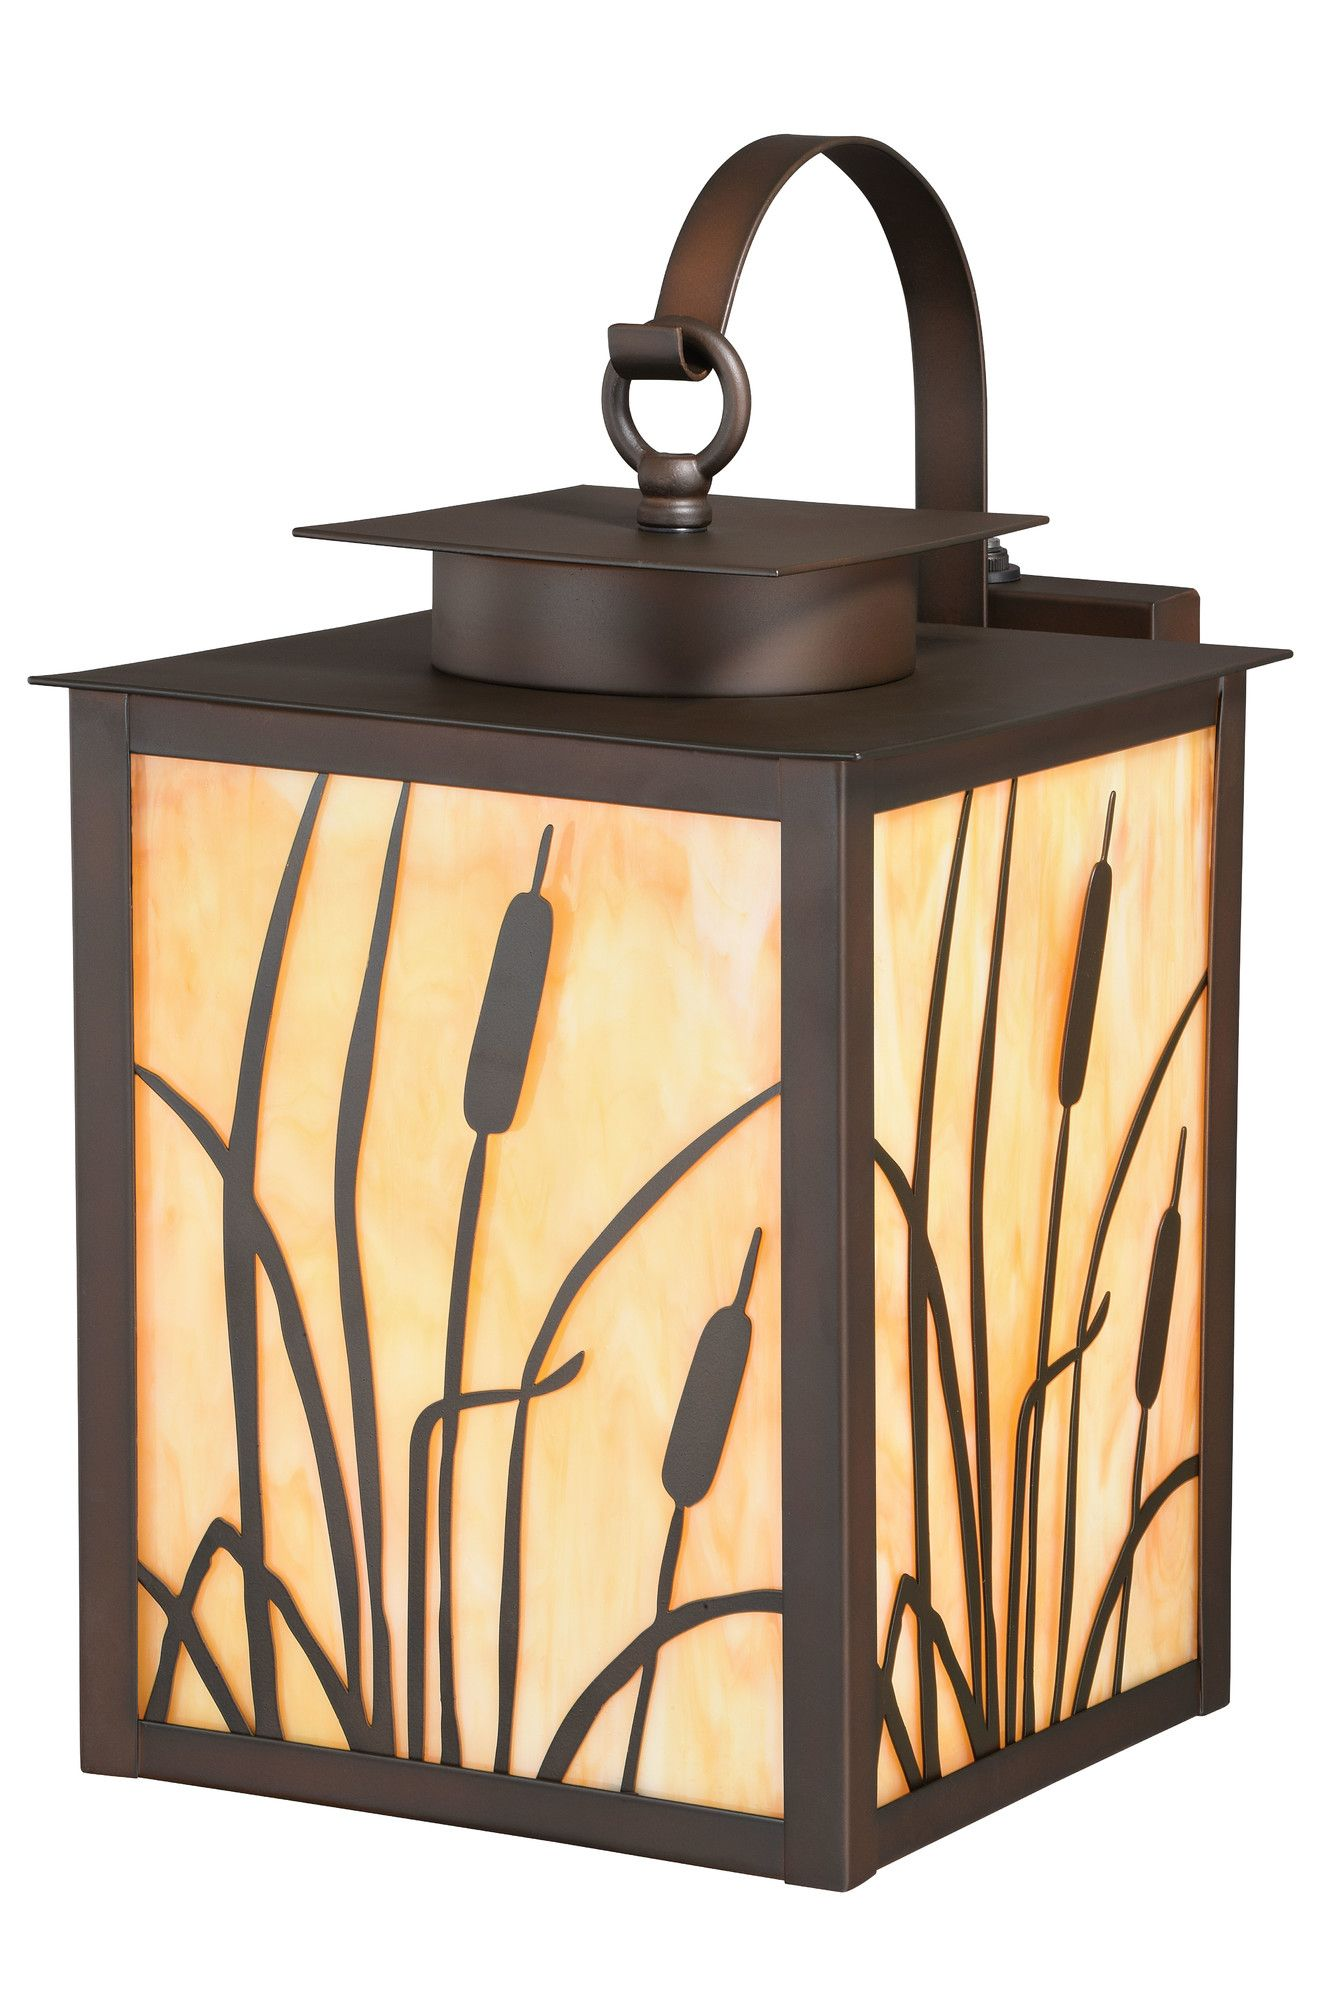 Bulrush Outdoor Wall Lantern | Products | Pinterest | Outdoor wall ...